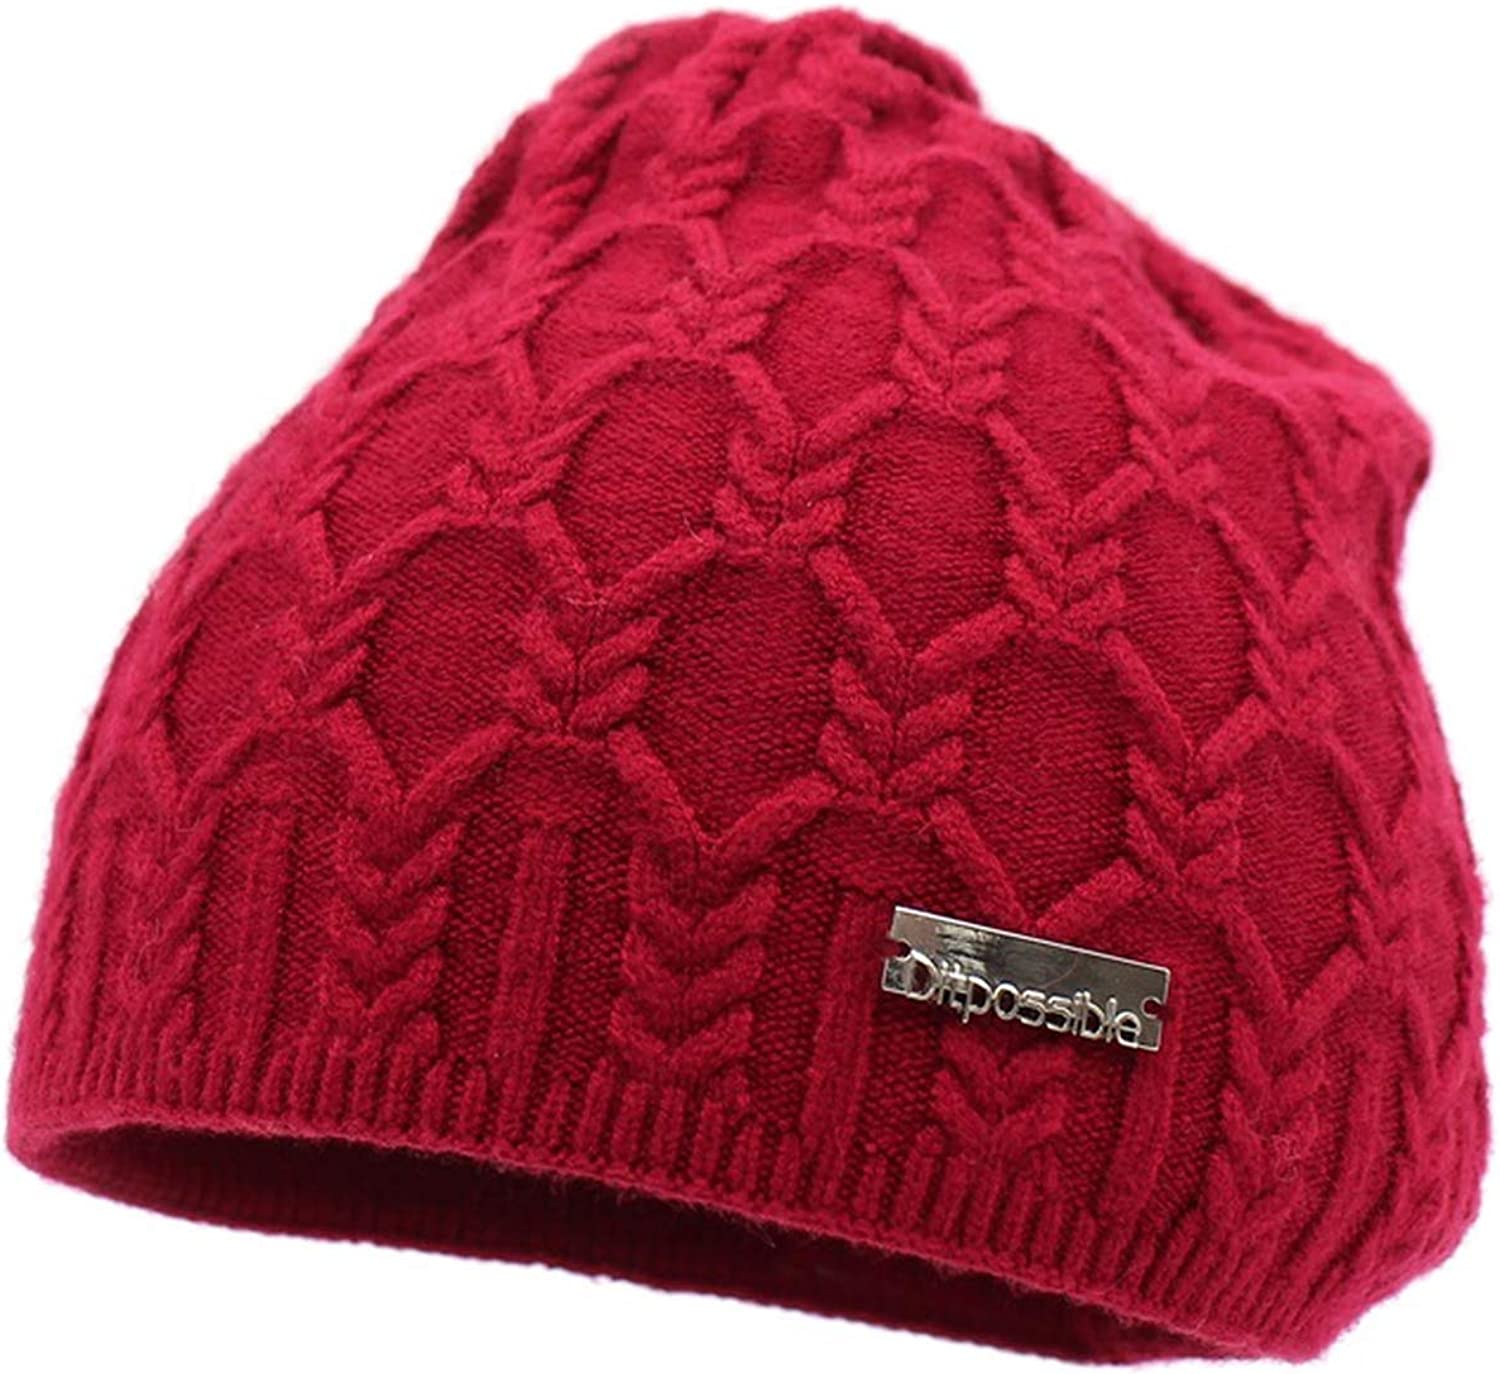 Wension Girls Winter Hats Fashion Knitted Beanies Bonnet Skullies Female Cap Gorro Wool hat for Women